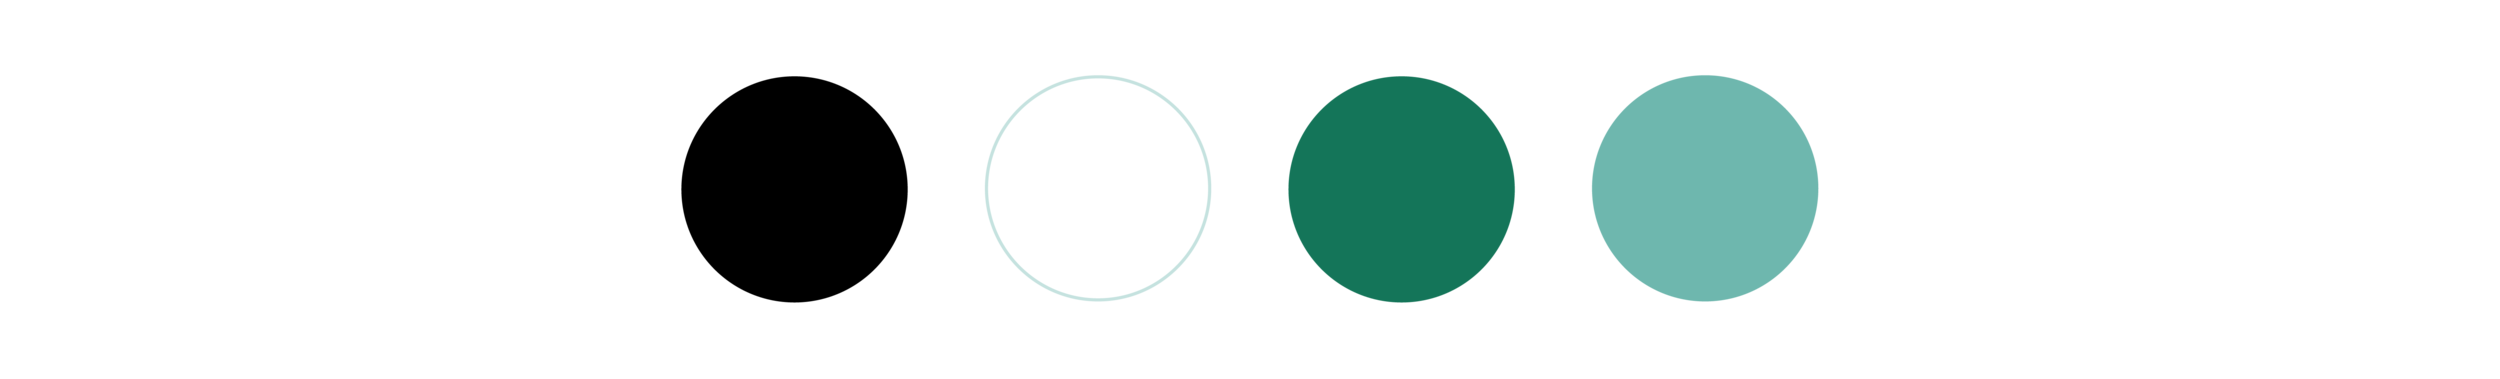 yourworldmyeyes_logodesign_R2_ywme_colorpalette.png